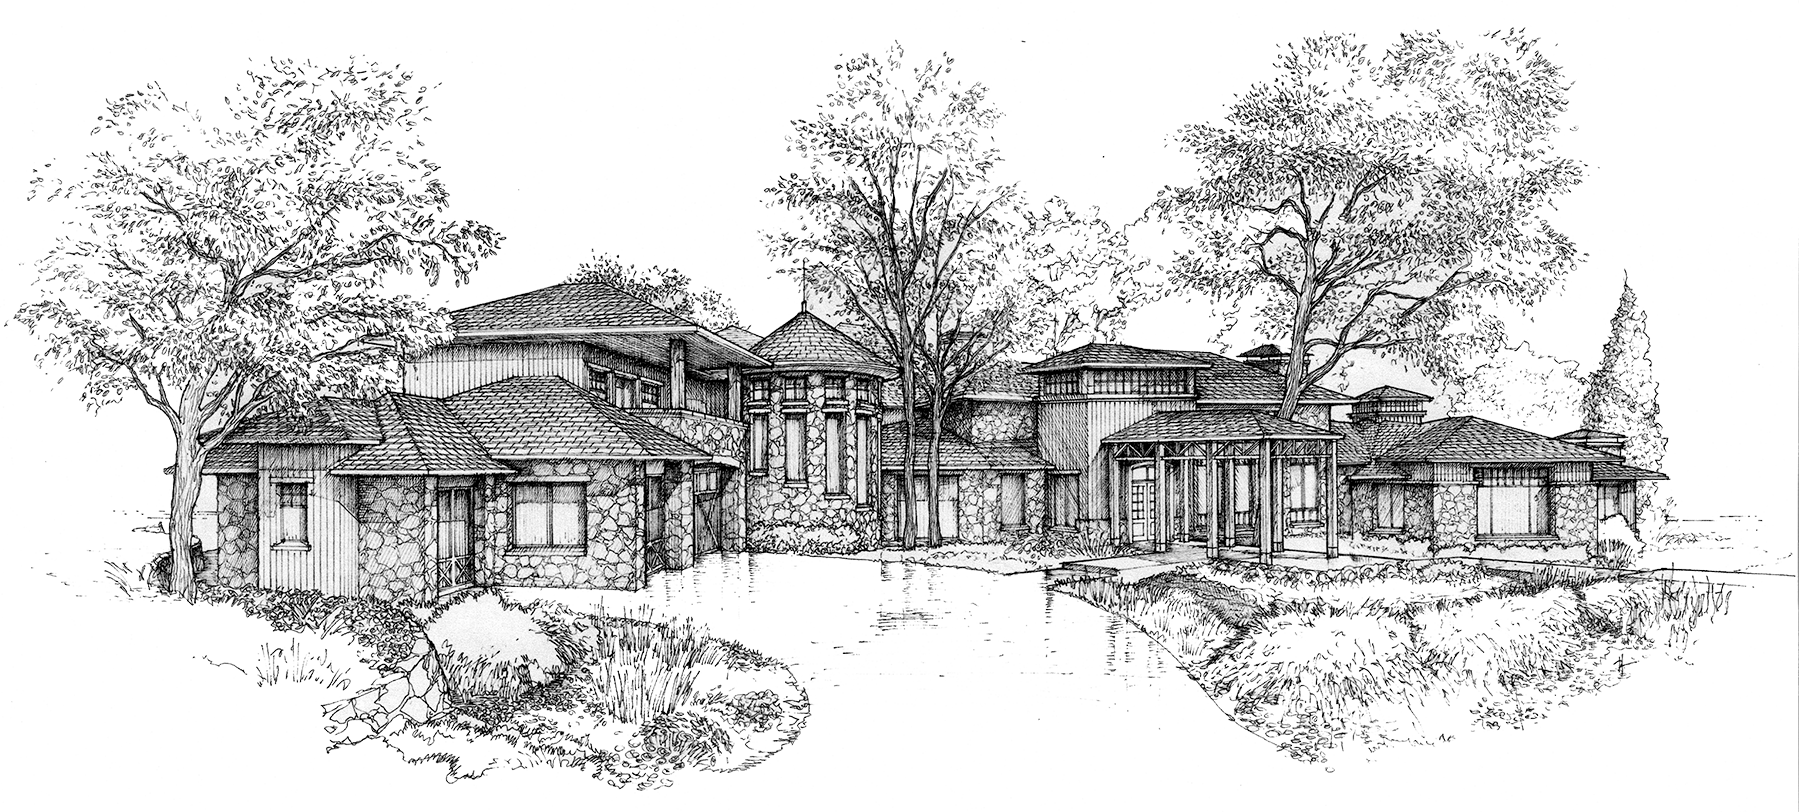 clipart library library Rendering drawing. Highlands mabry custom homes